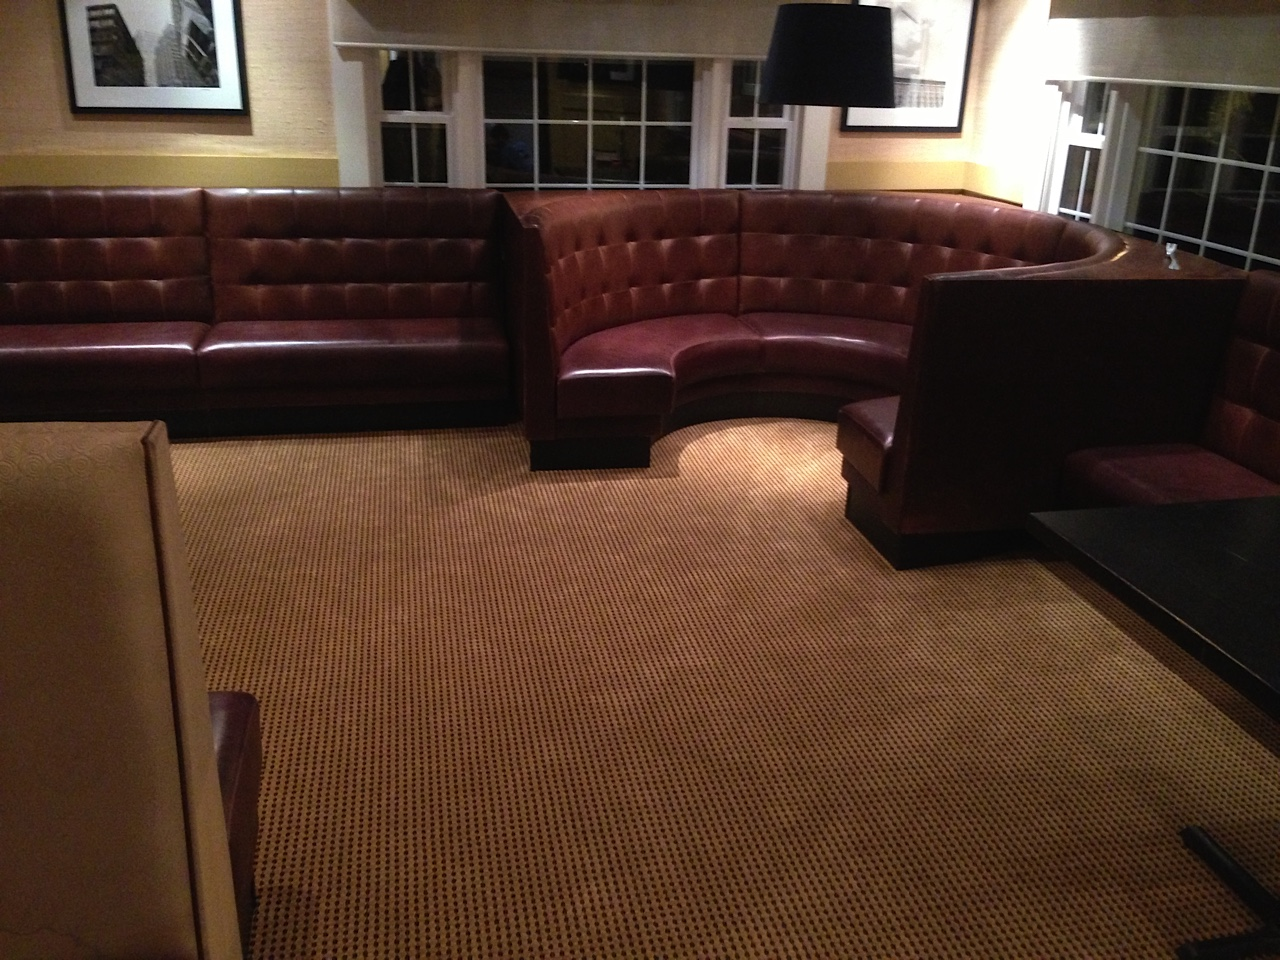 Commercial Carpet & Blind - Cafe Routier, Westbrook